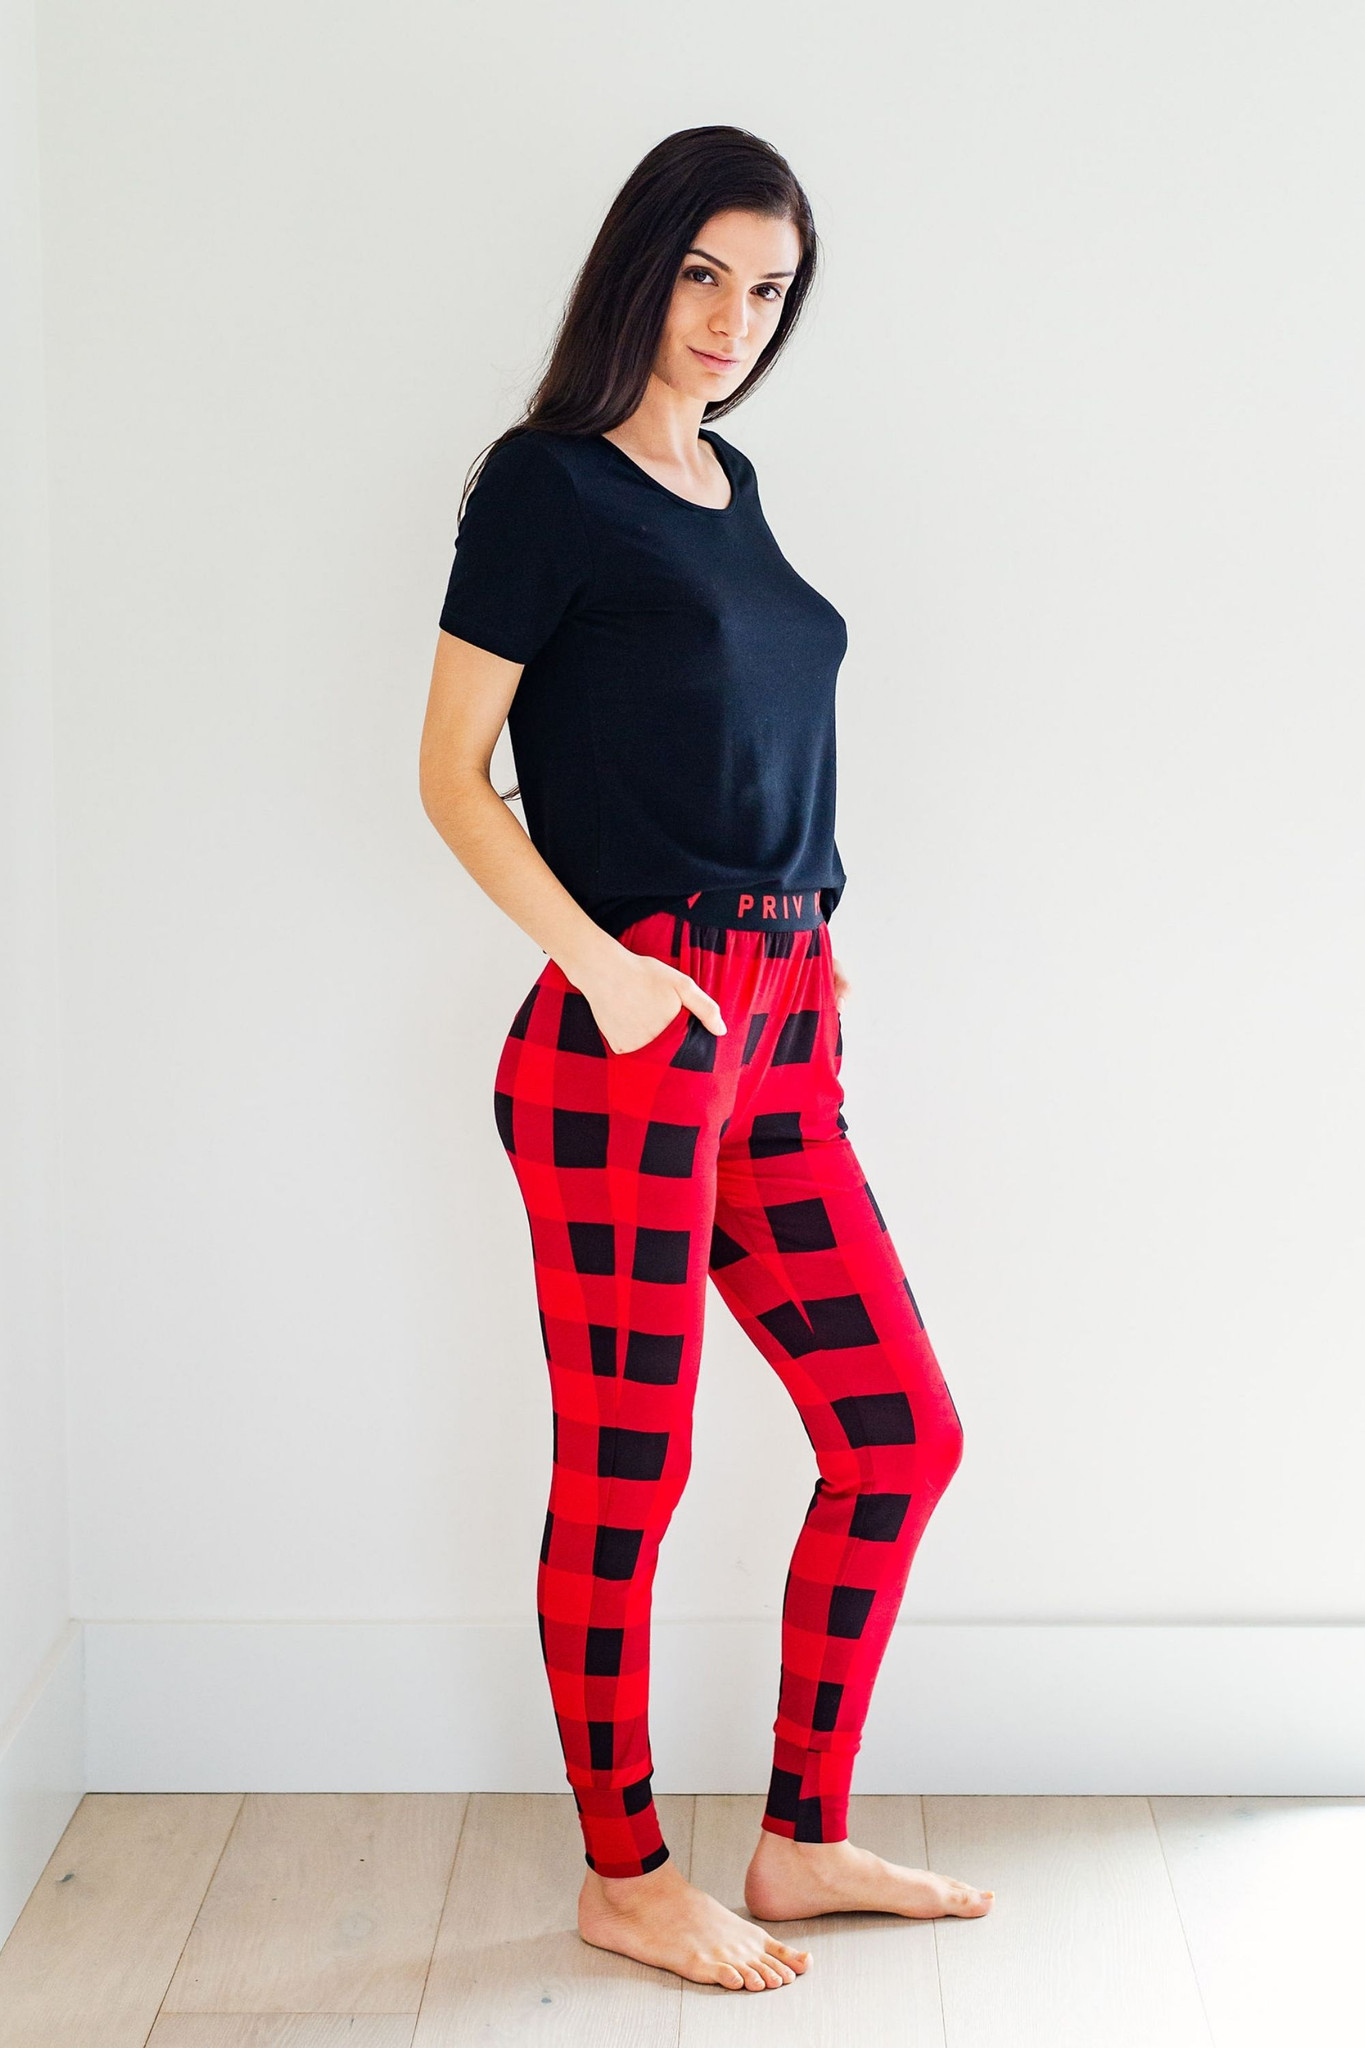 Cozy up in our exclusive buffalo check lounge collection for the whole family. Made from our signature buttery french terry that you know and love, get your hands on these sets while you can! This set pairs perfectly with our basic tee collections for the ultimate in stylish lounge-ability. 95% modal 5% spandex, Machine wash cold, Hang to dry